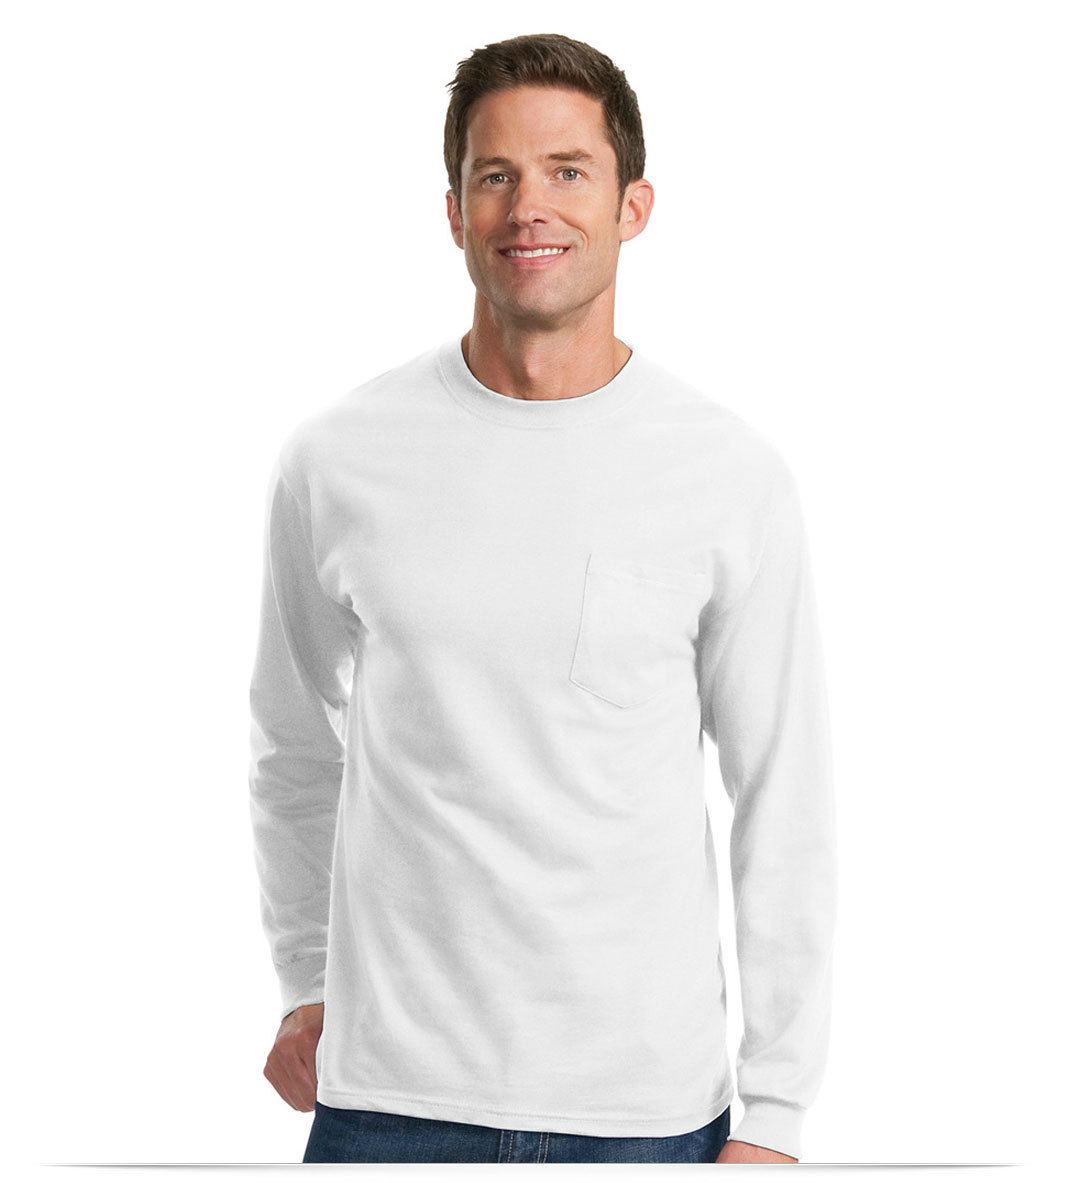 6e7e8b3b Design Custom Logo on 100% Cotton Long Sleeve T-Shirt with Pocket